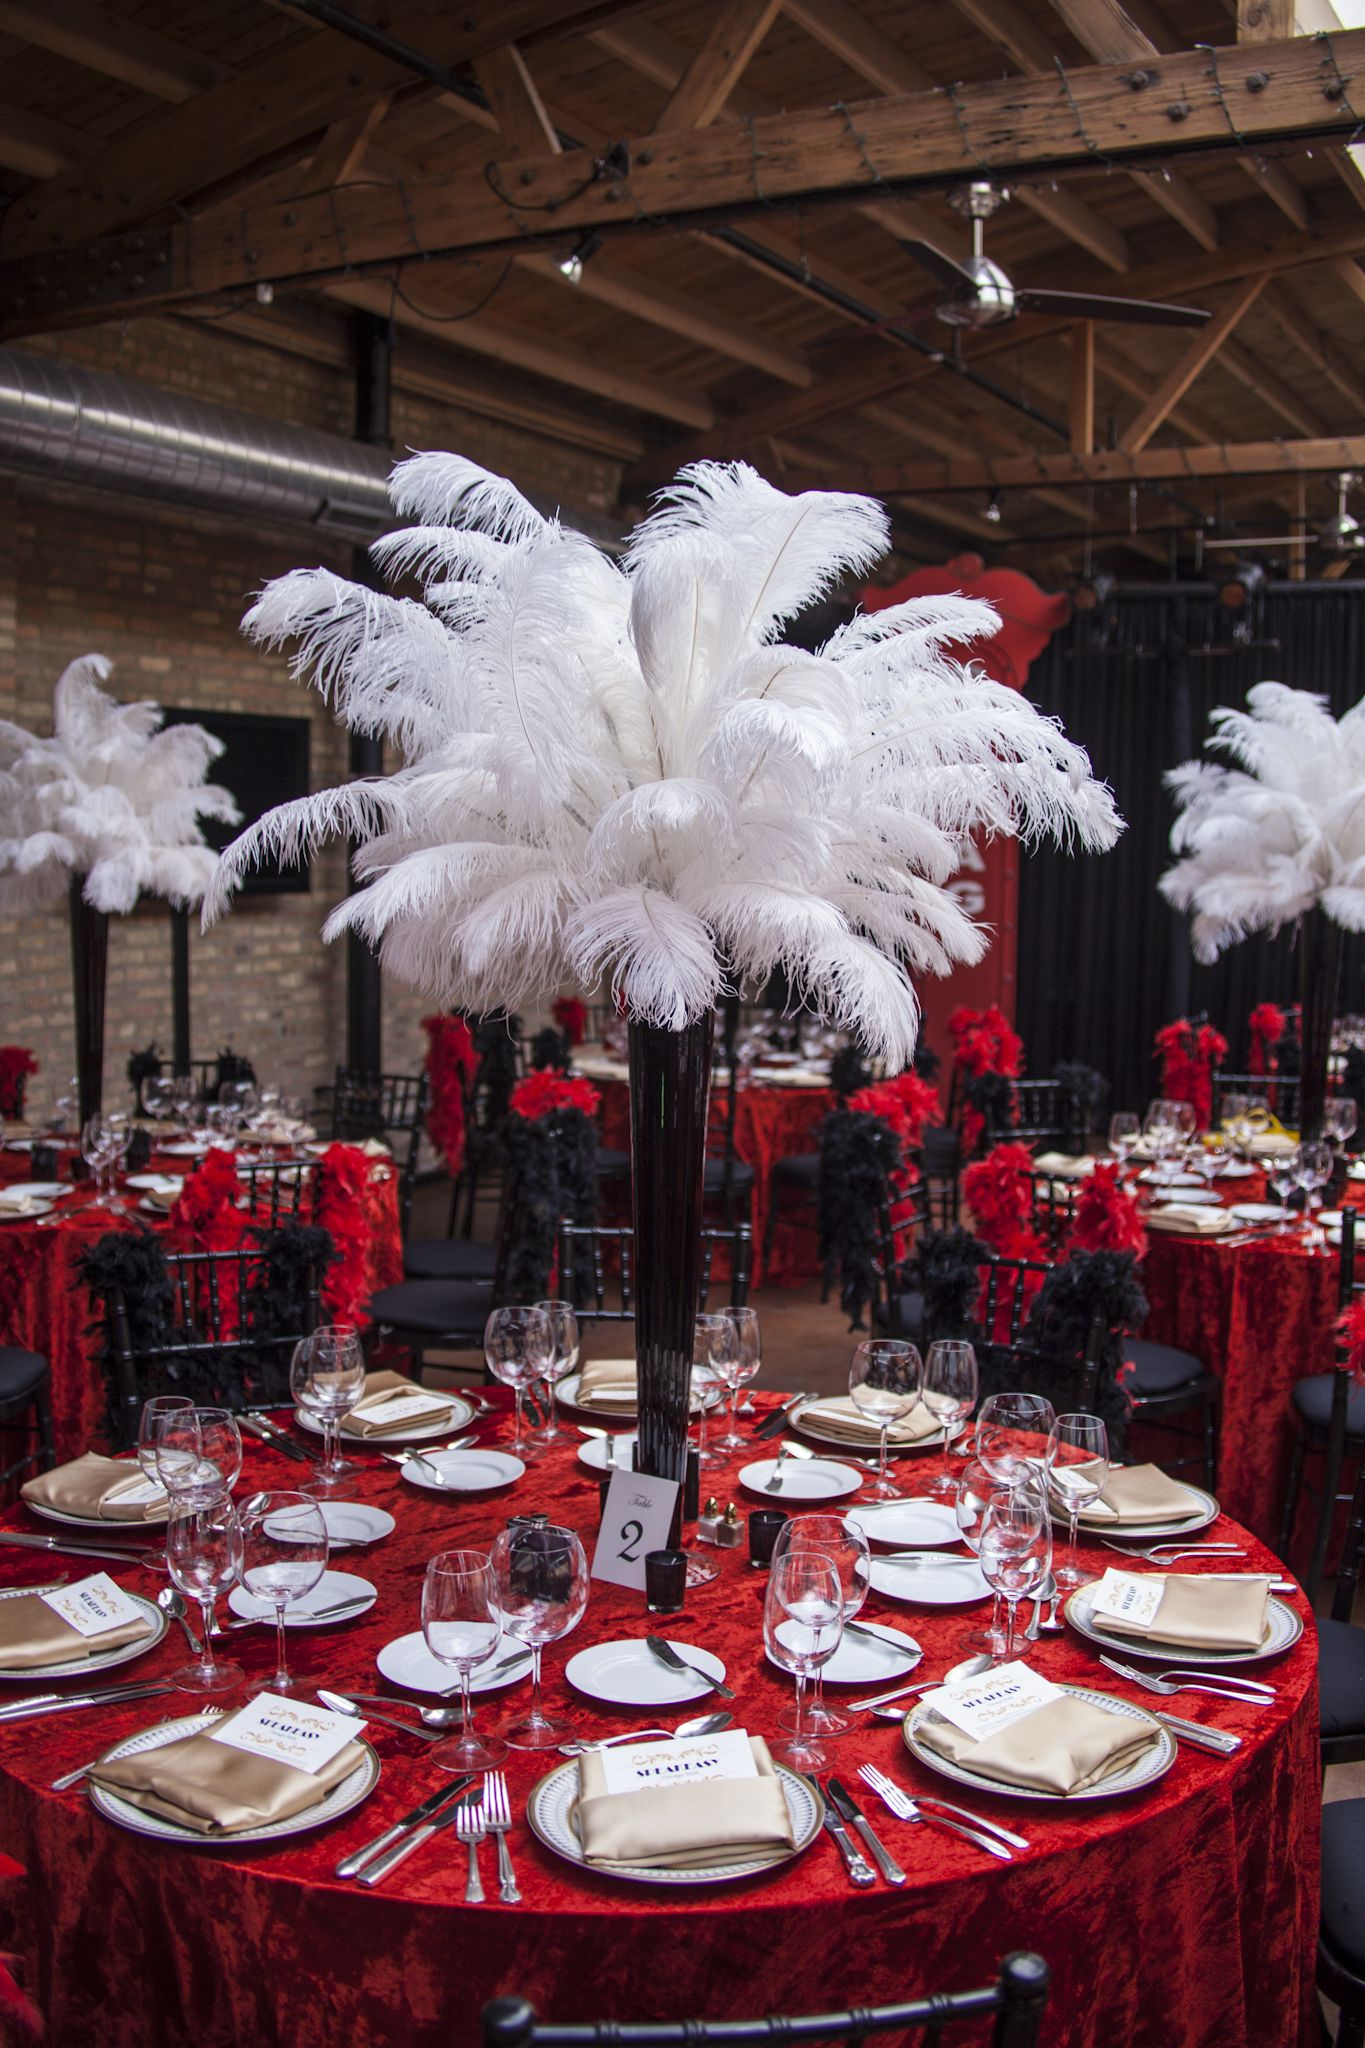 Night wedding decor ideas  Loved these Ostrich feather centerpieces  theseud be stunning at